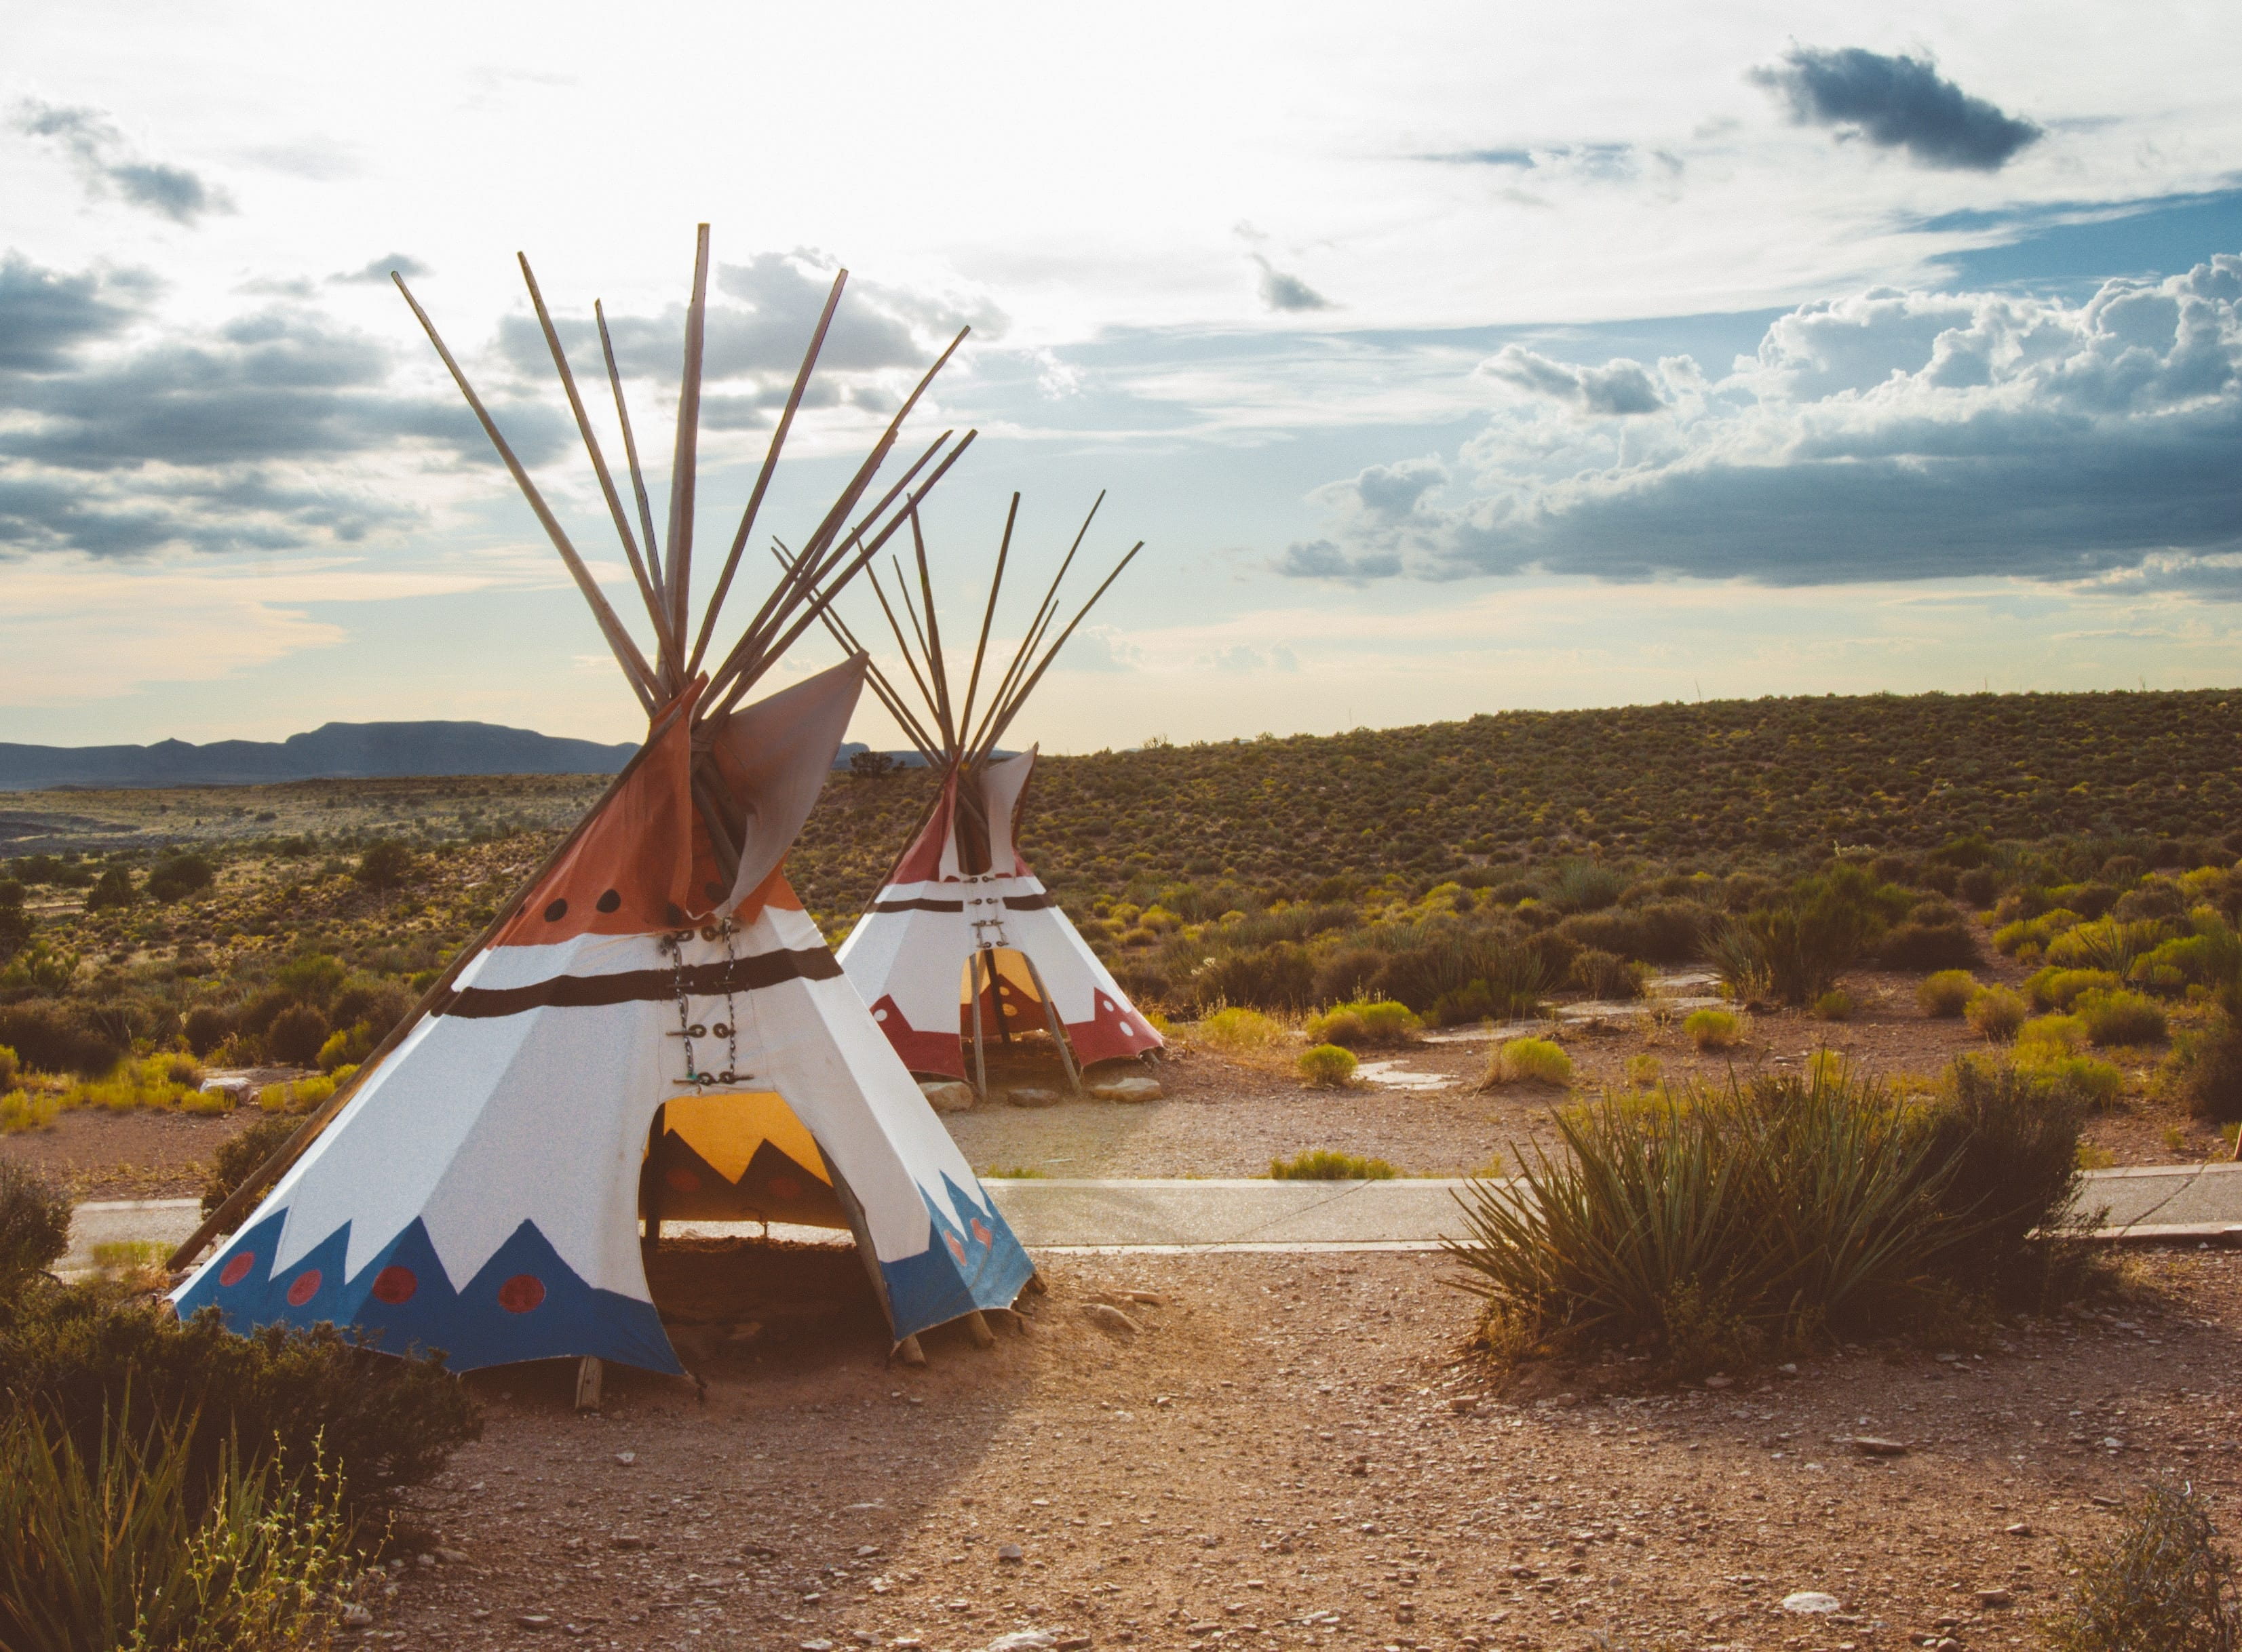 Native Americans Need to Know their Land will be Protected